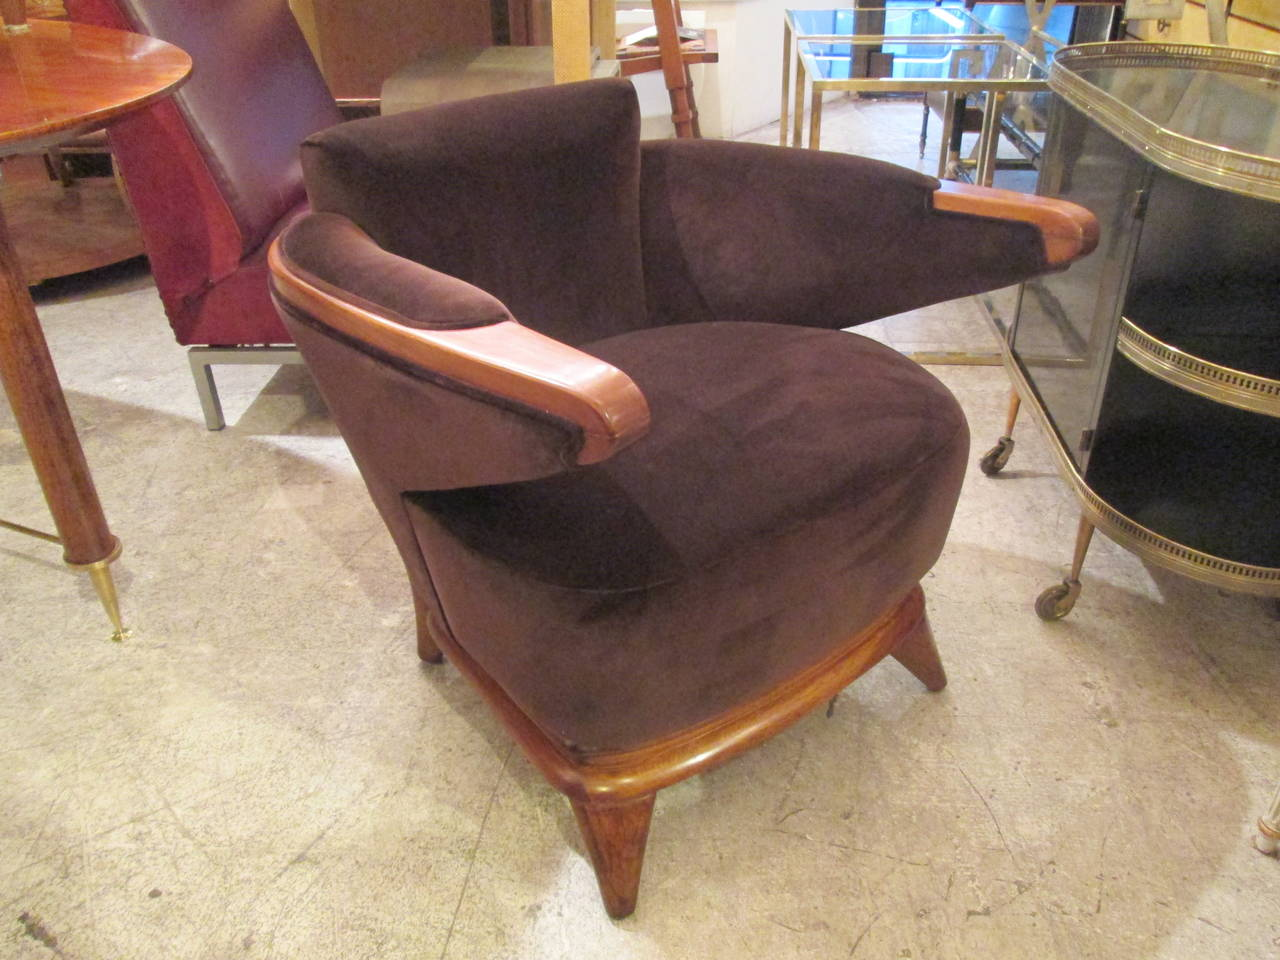 Very rare pair of sculptural Mid-Century lounge chairs with cantilevered arms.